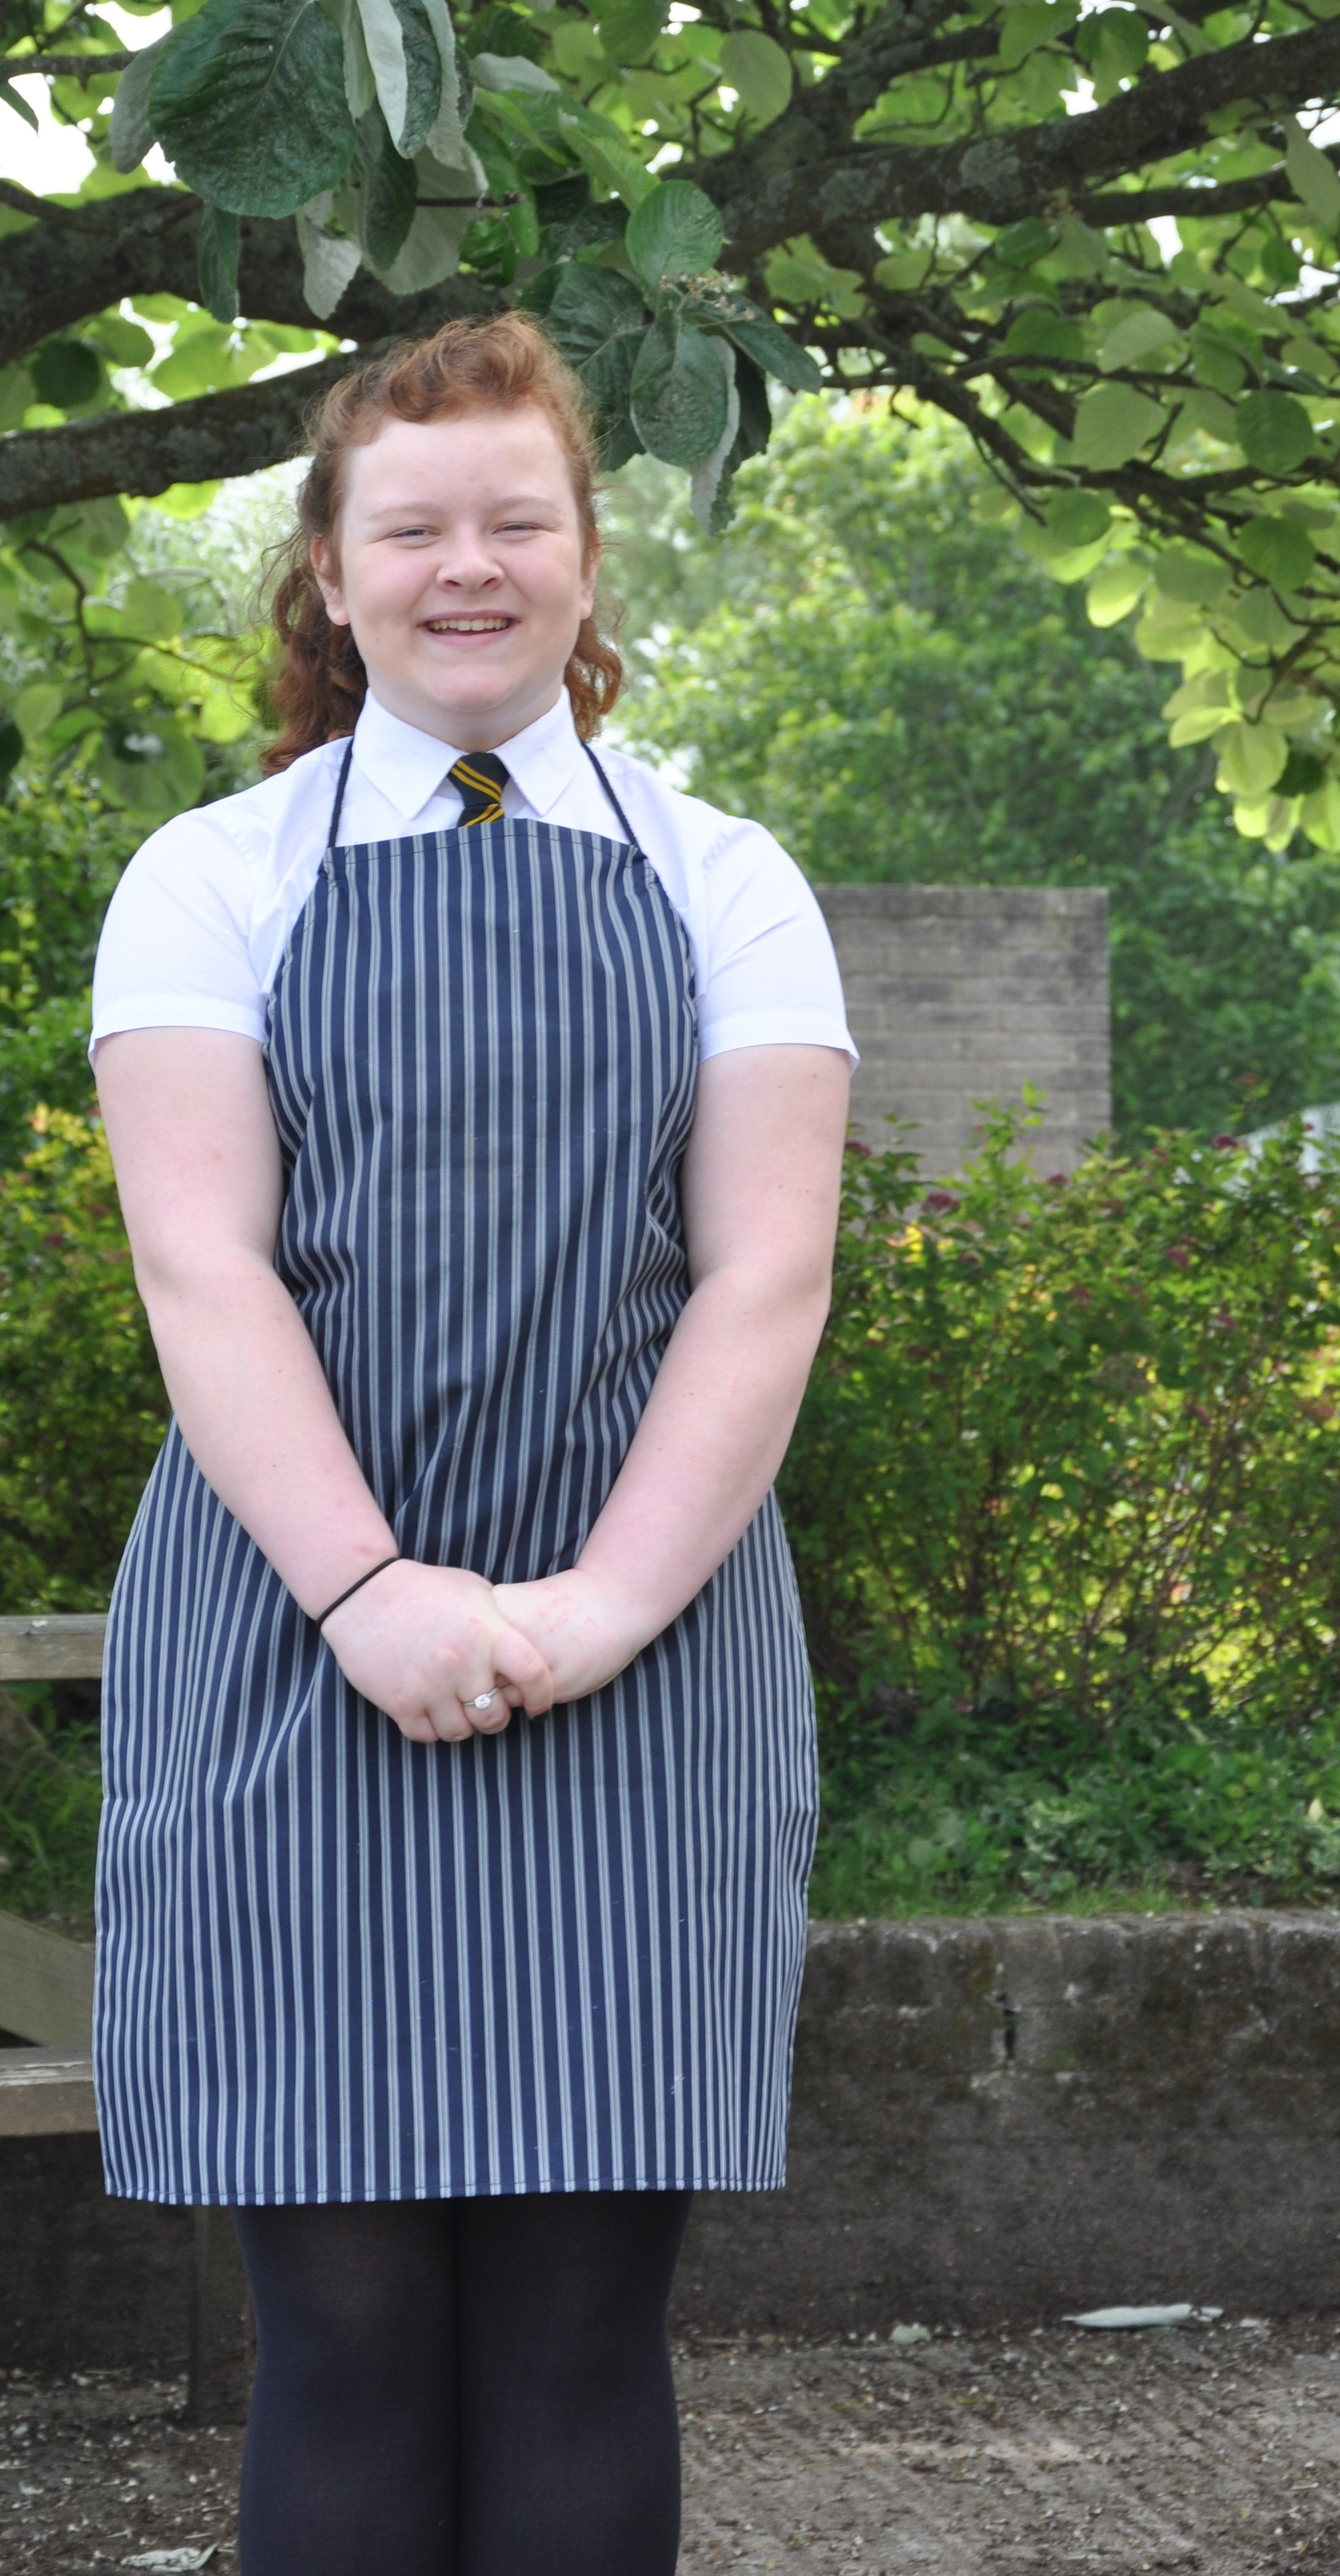 Emma did well after entering a chef competition the last academic year.